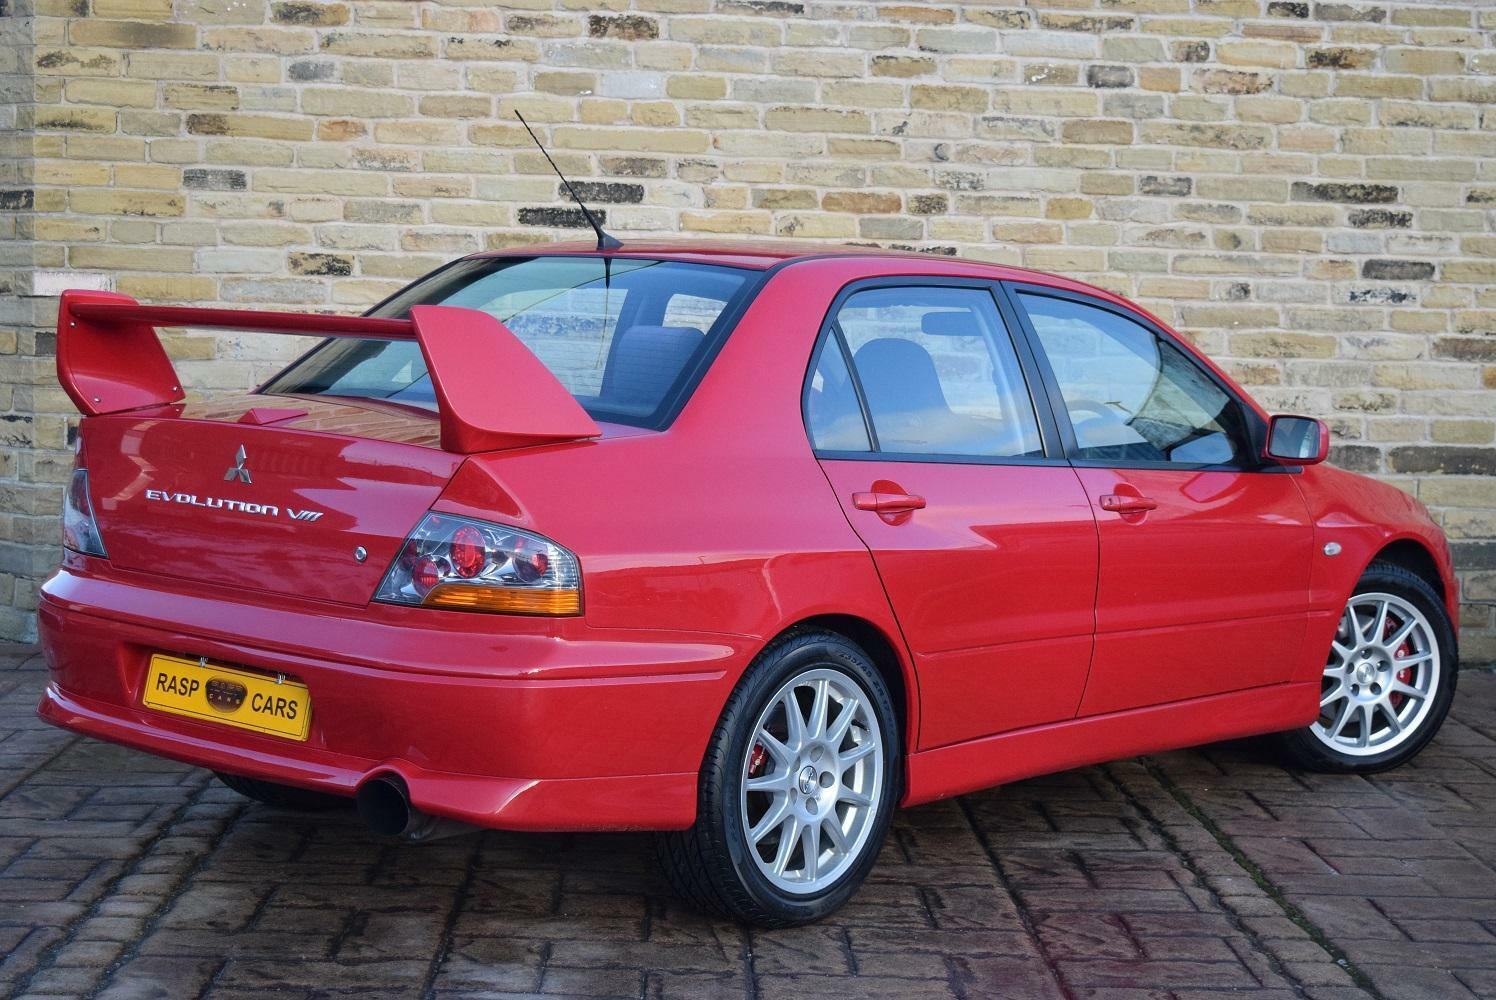 2004 Mitsubishi Lancer Evolution 8 2 Owners + F/S/H For Sale (picture 2 of 6)